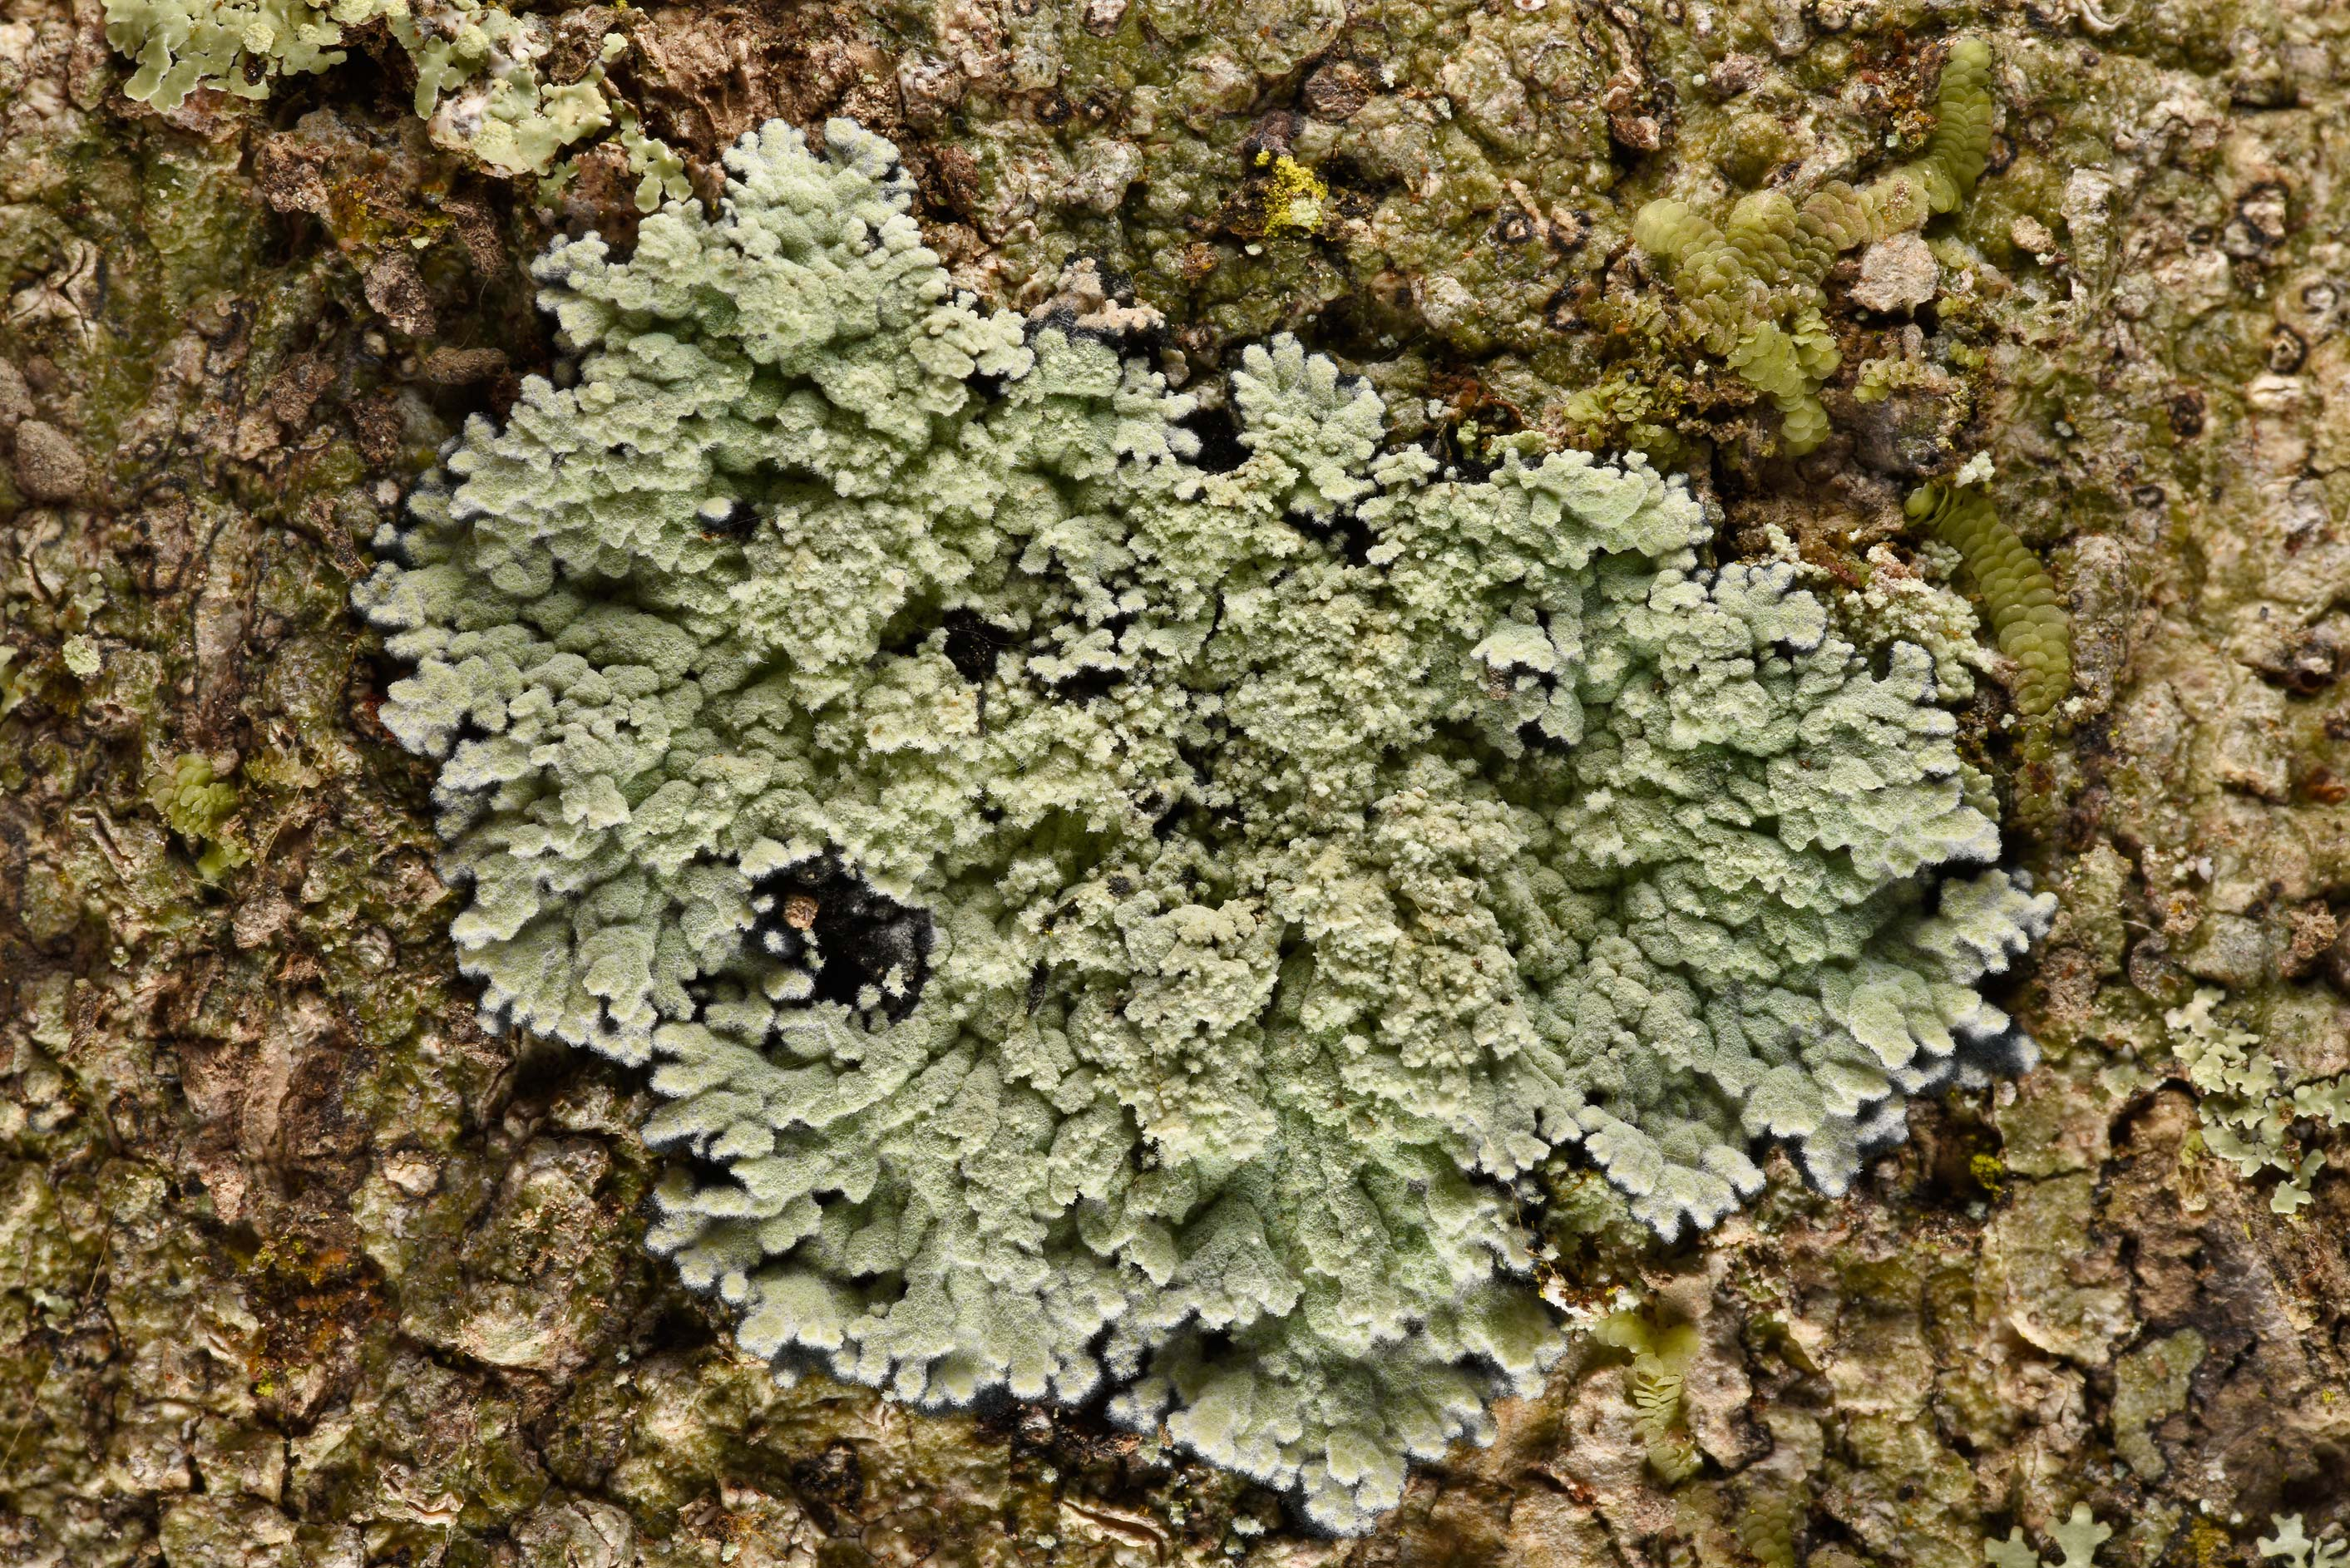 Lobed cotton lichen (Crocynia pyxinoides) on a...National Forest. Shepherd, Texas